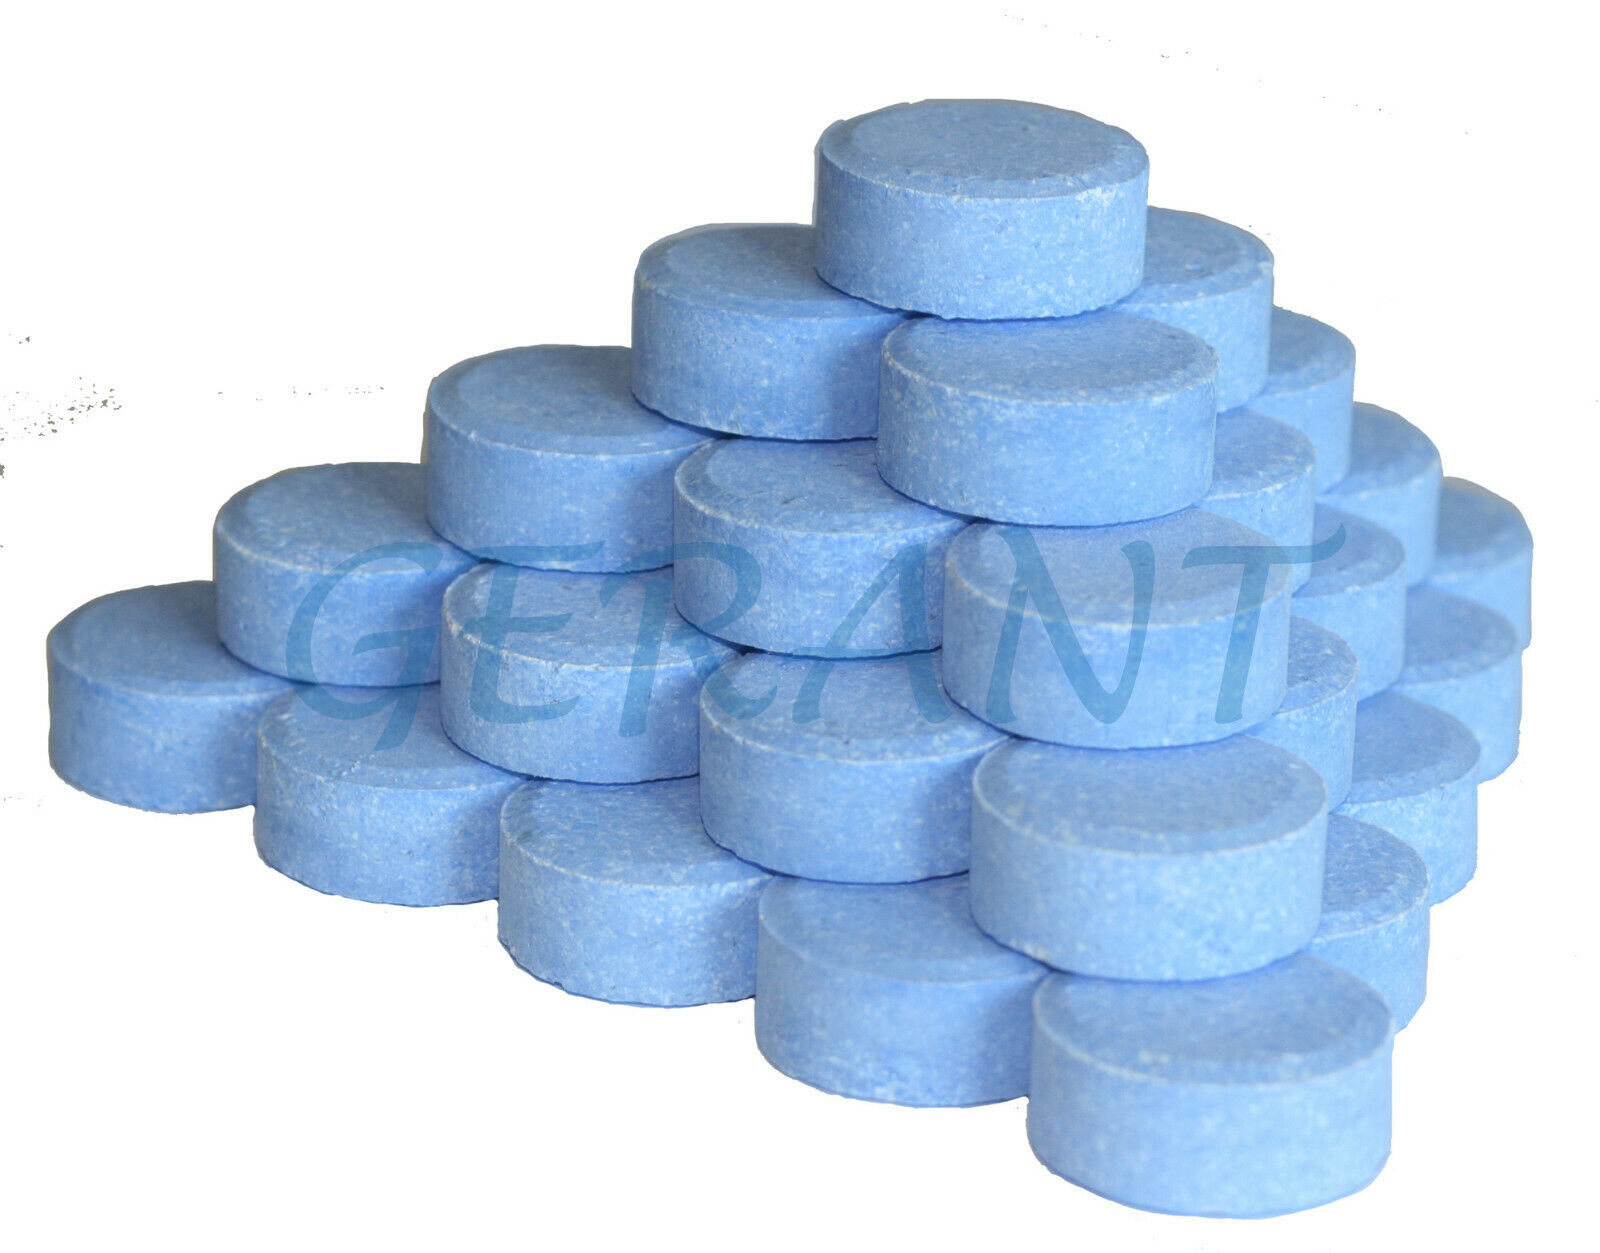 20g Multifunction CHLORINE TABLETS 5 IN 1 SWIMMING POOL HOT TUB SPA